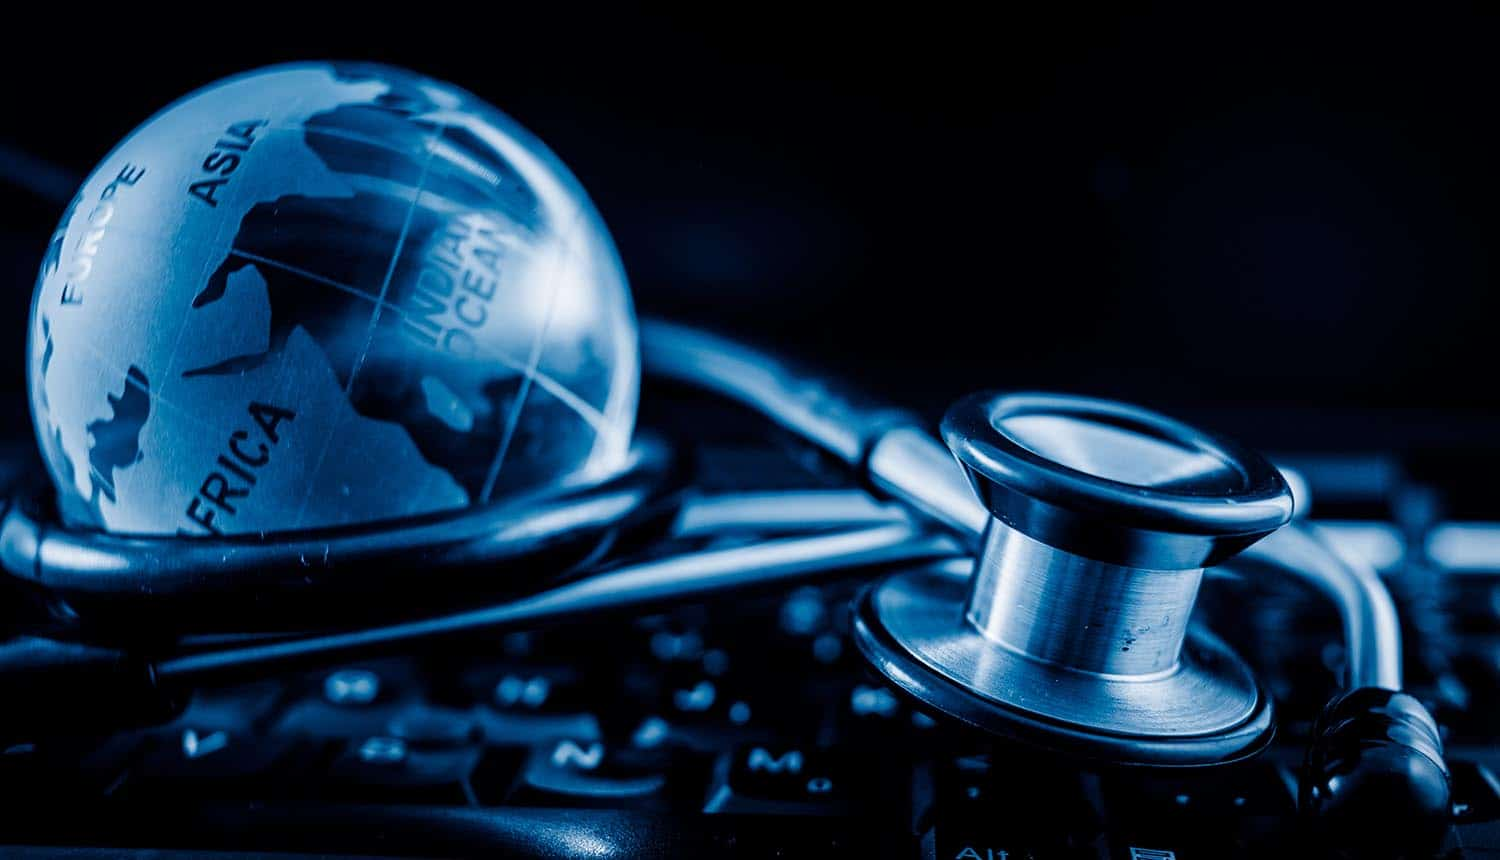 Glass globe and stethoscope on a computer keyboard showing health websites sharing medical data with advertisers